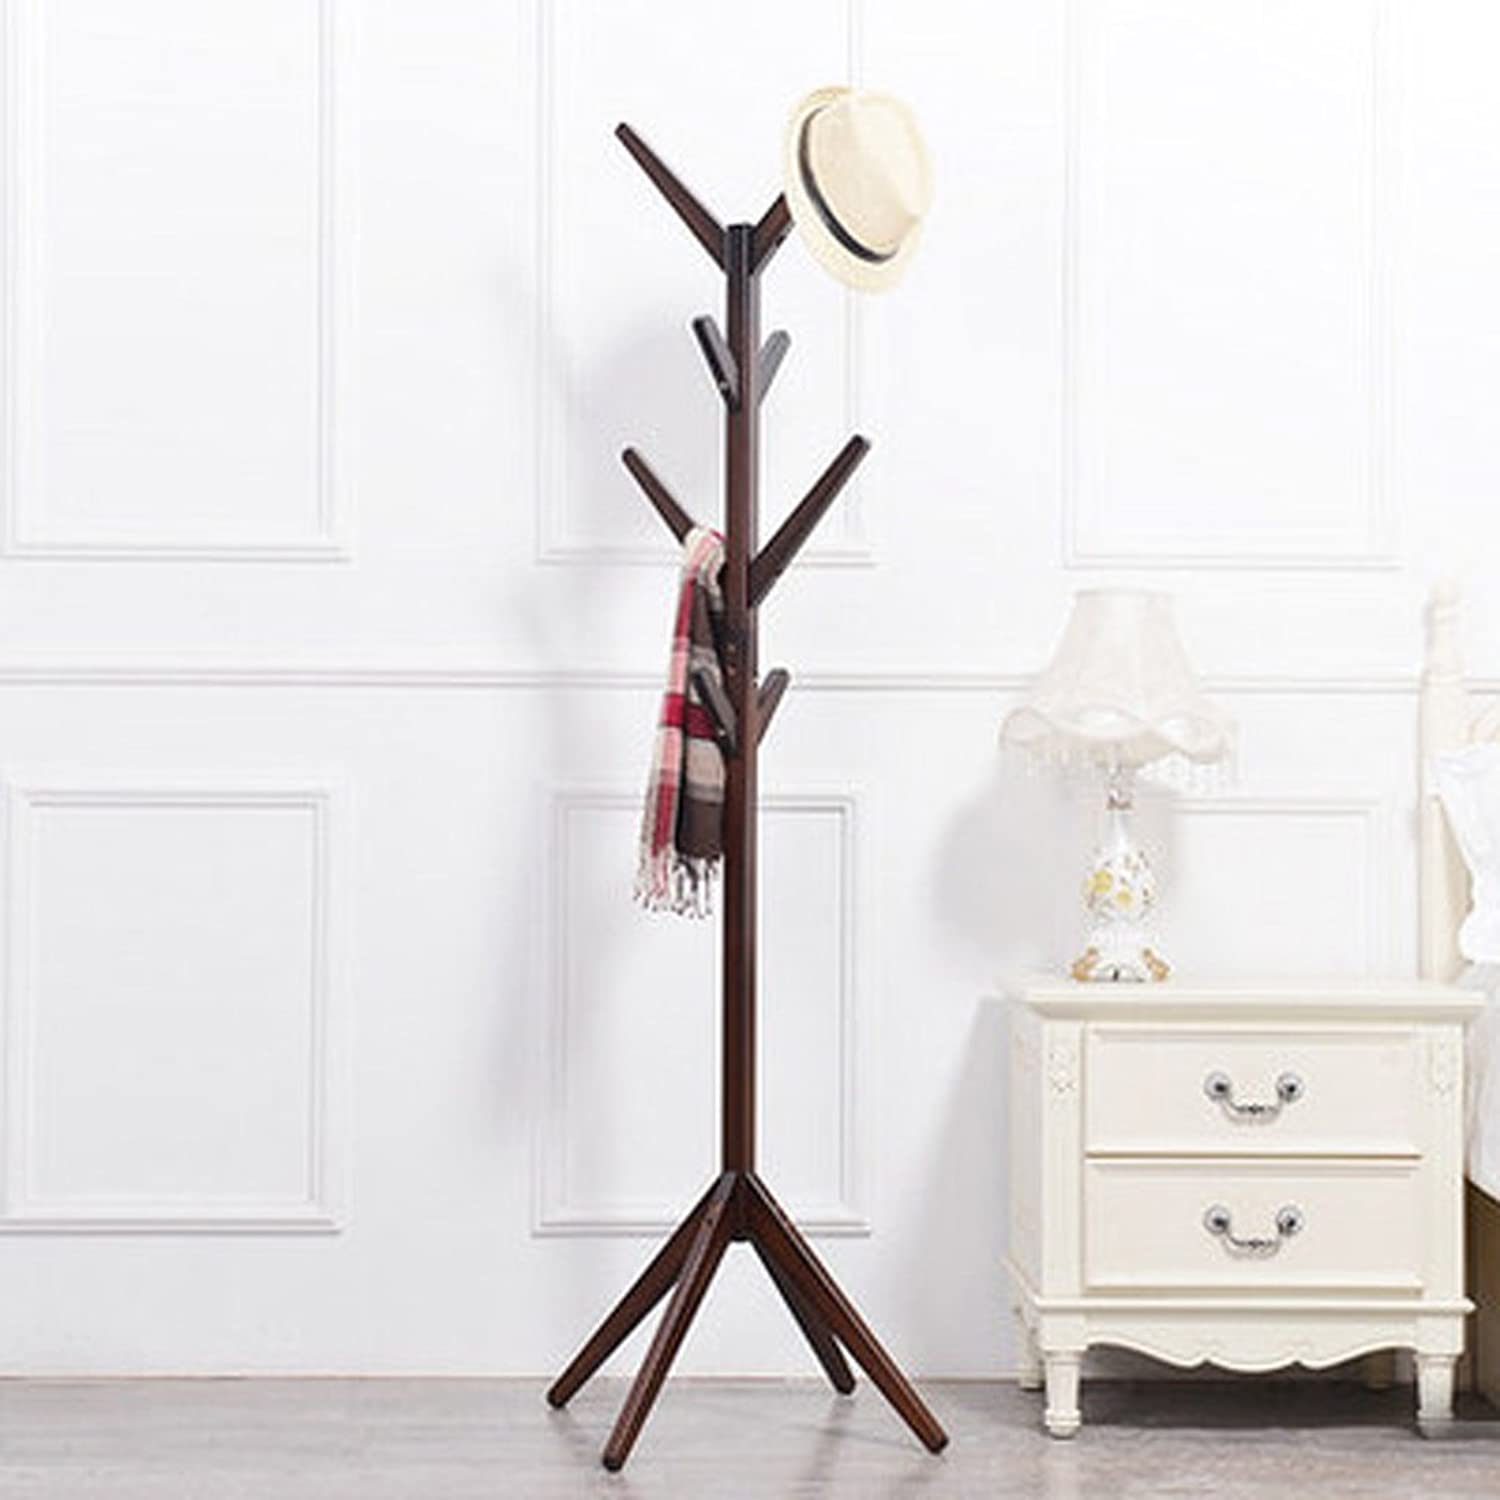 Coat Racks Floor Solid Wood Bedroom Living Room Hanger Simple Modern Household Hangers Indoor Clothes Rack (color   Brown)